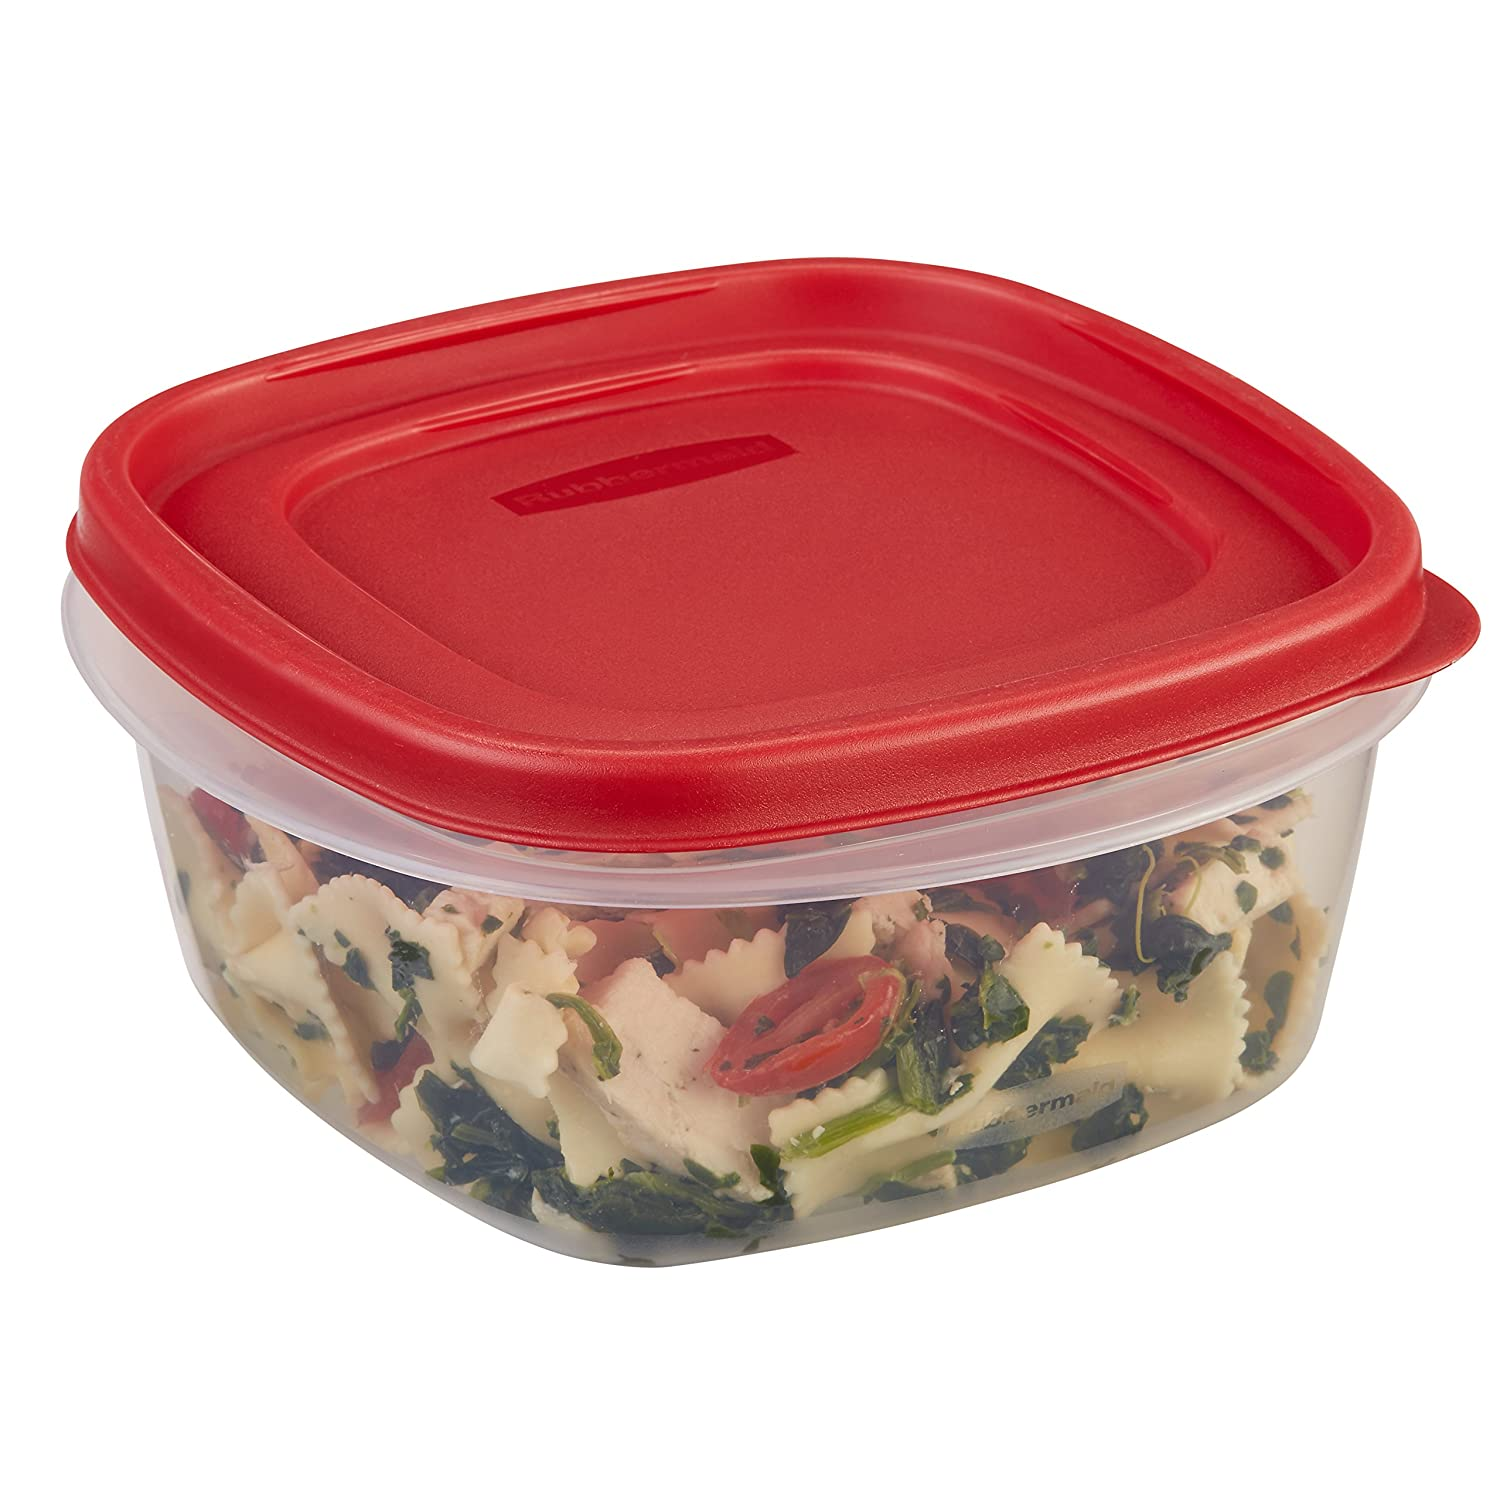 Rubbermaid Easy Find Lids Food Storage Container, 5 Cup, Racer Red 1777087